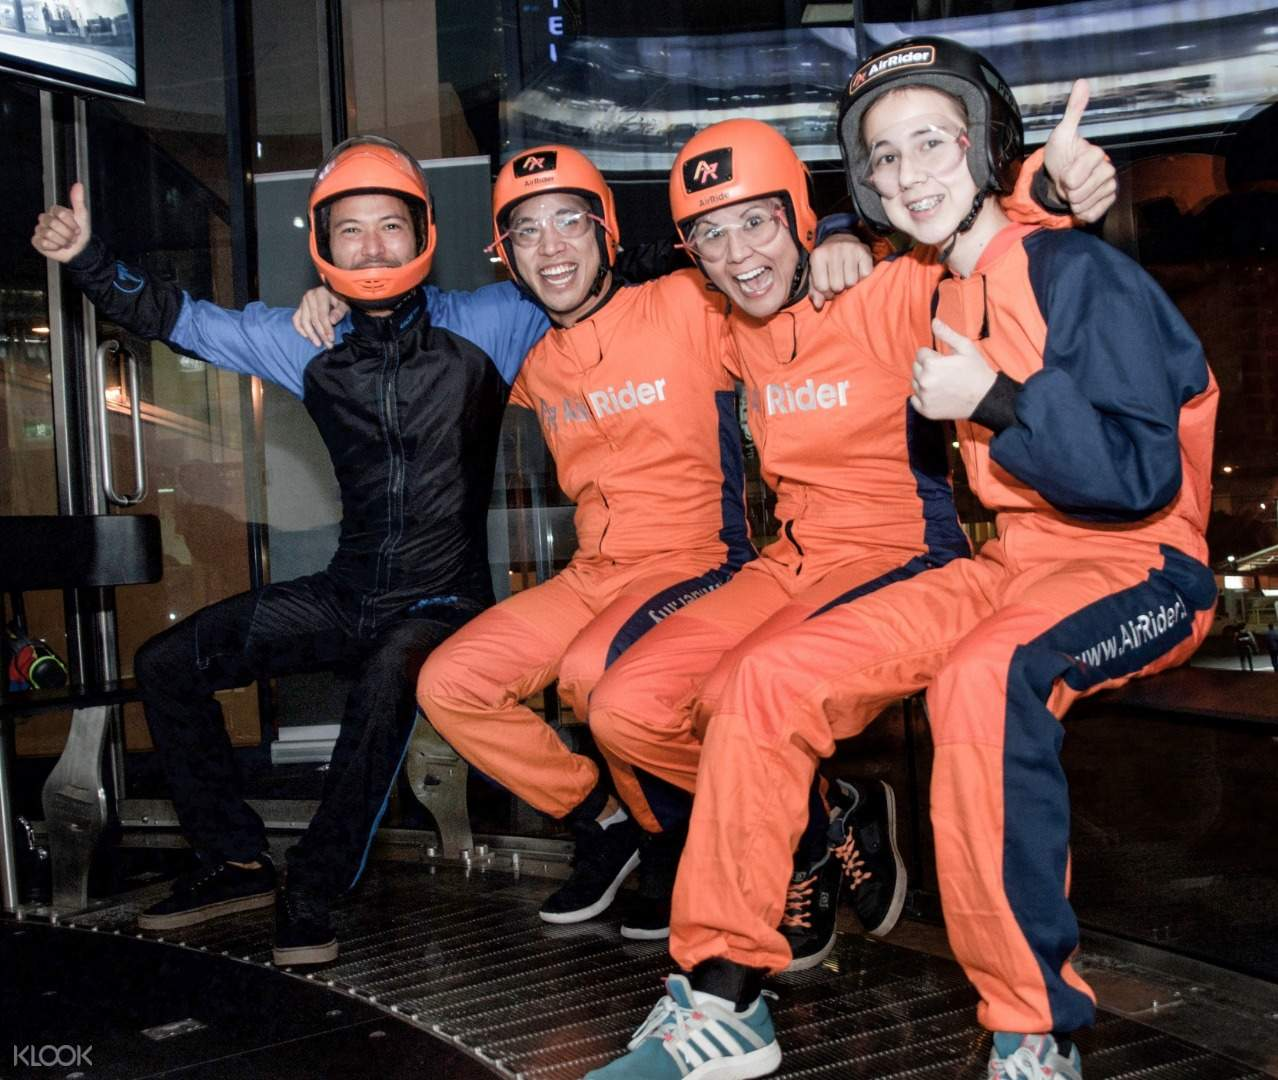 Indoor skydiving instructors with participants